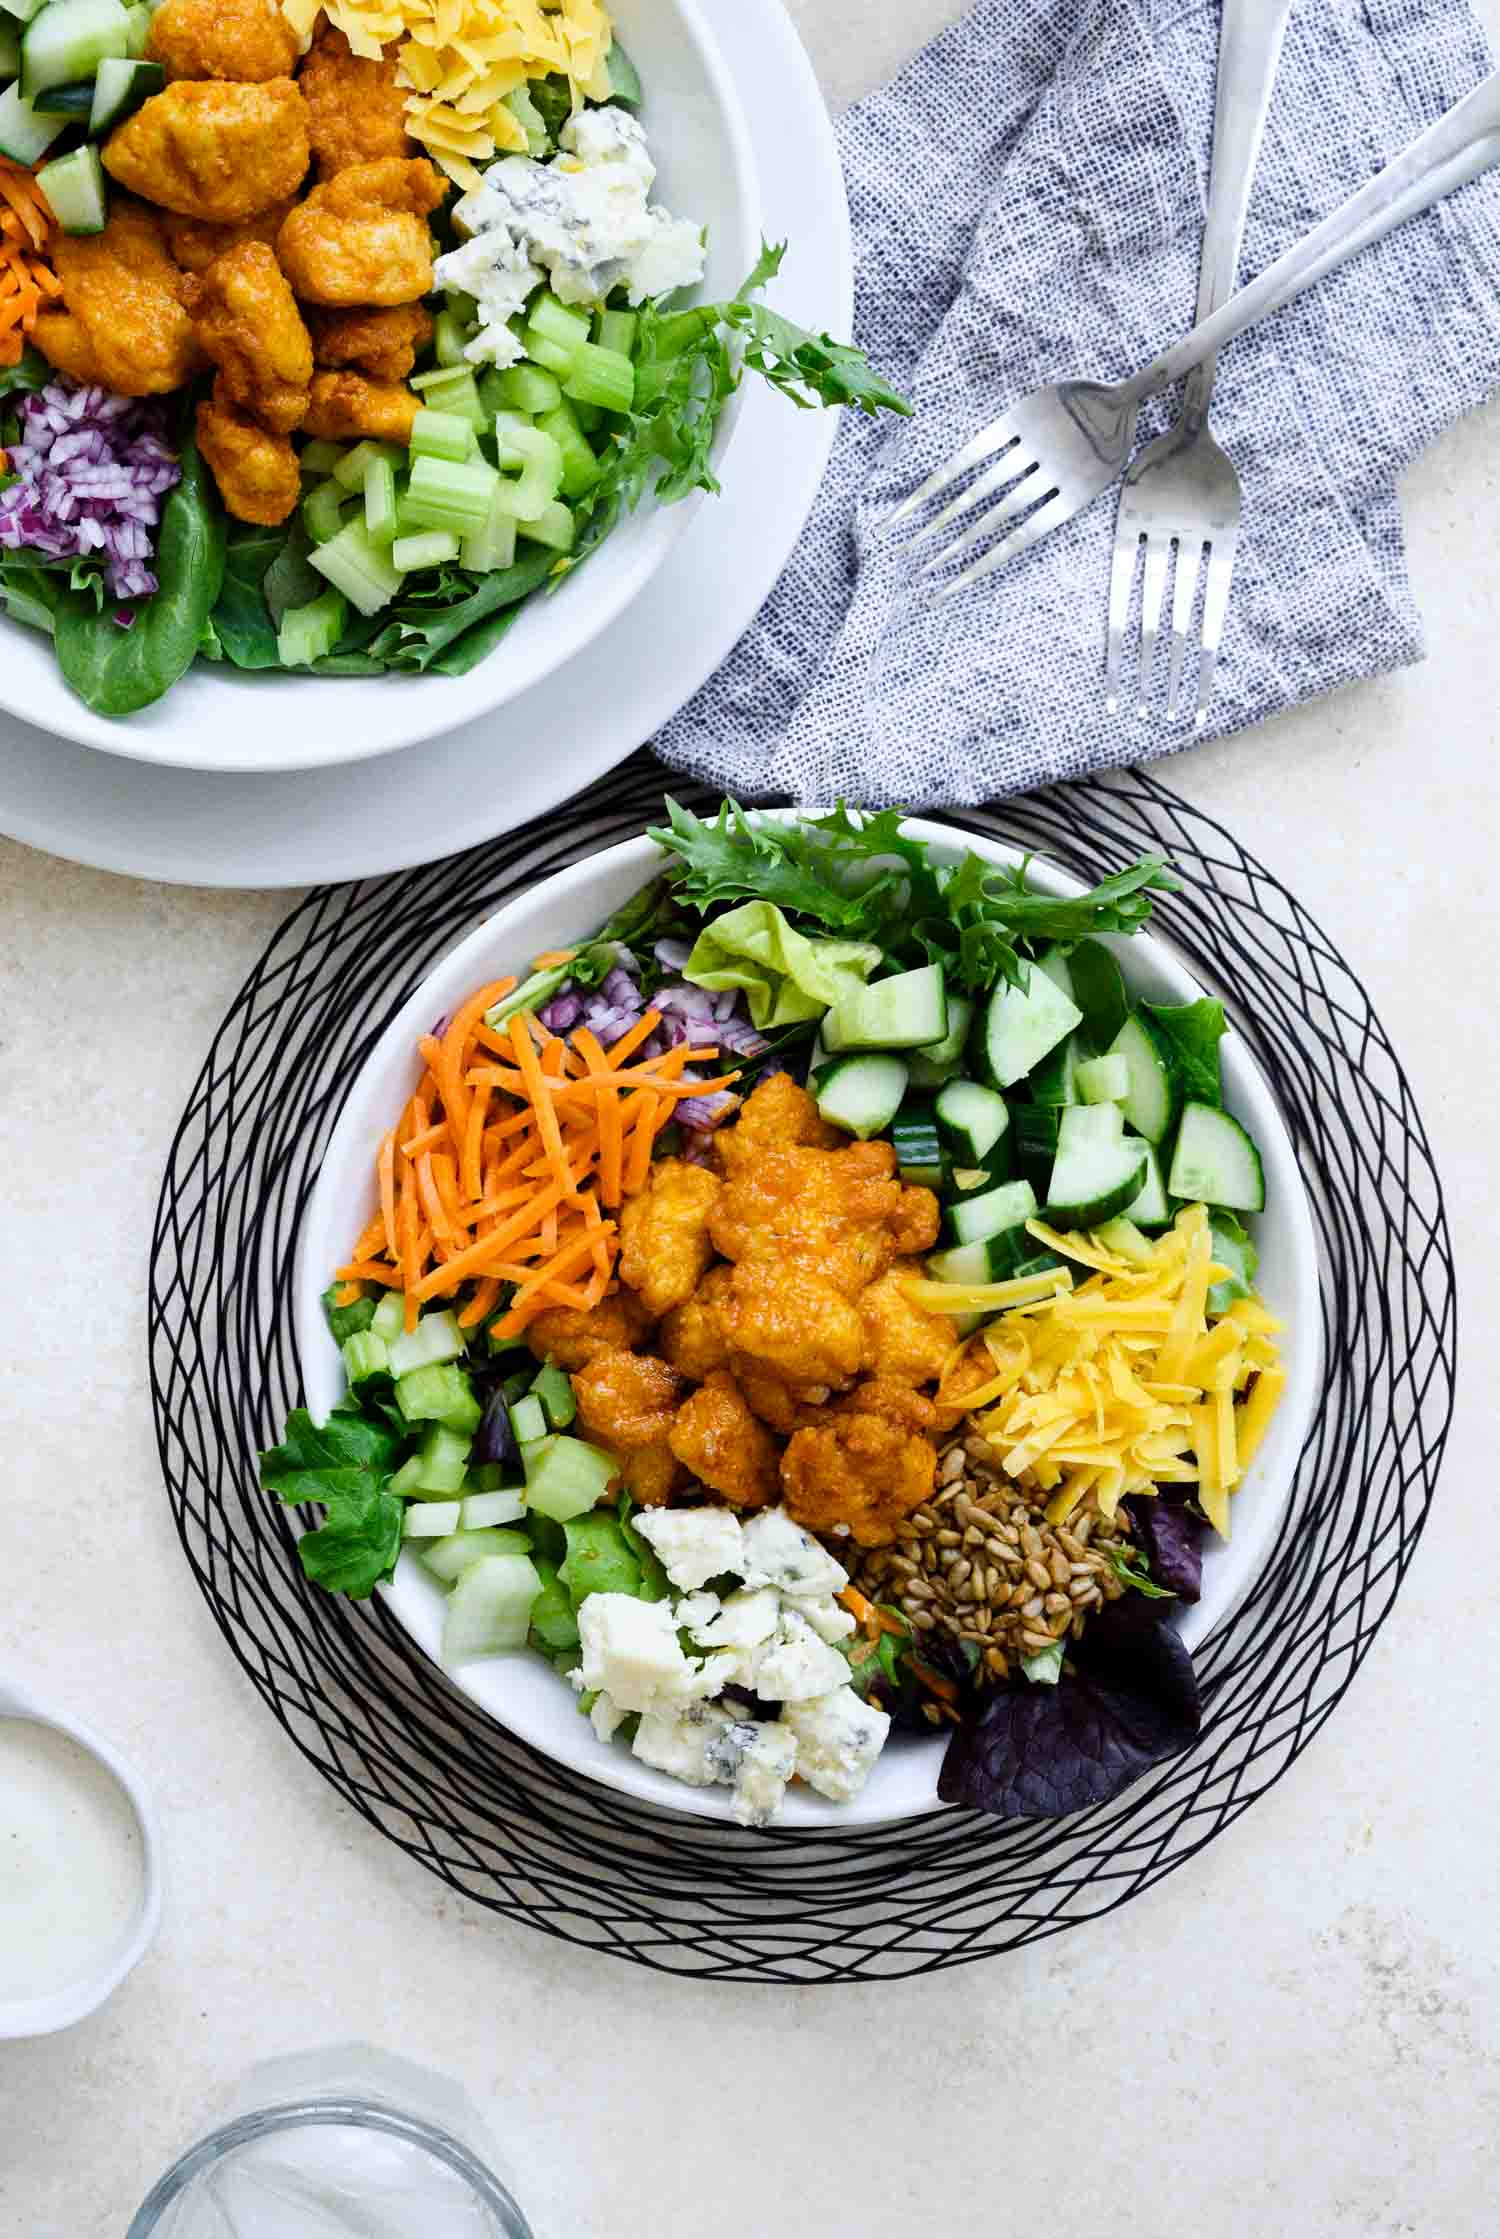 Two white bowls of salad ingredients including some buffalo chicken and crumbled blue cheese